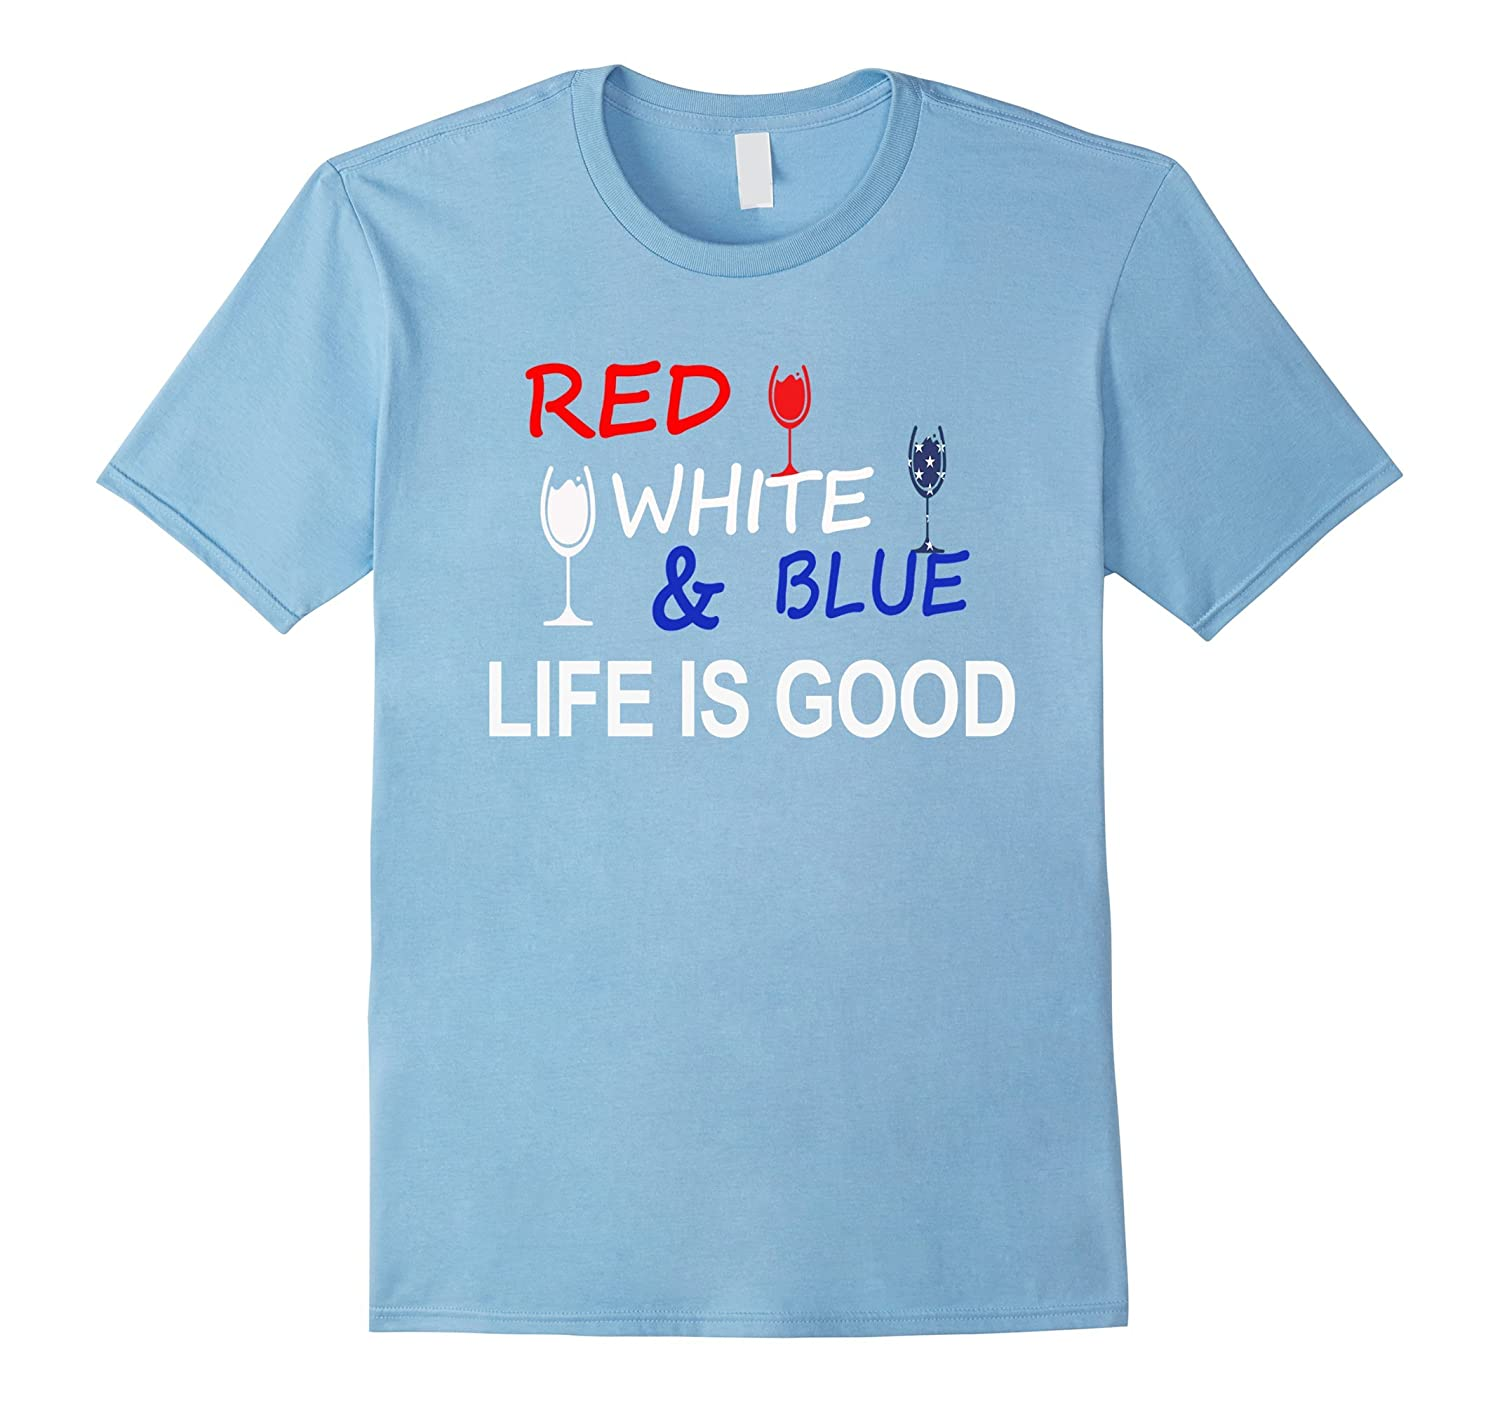 Life is good wine t shirt red white and blue wine pl for Good white t shirts